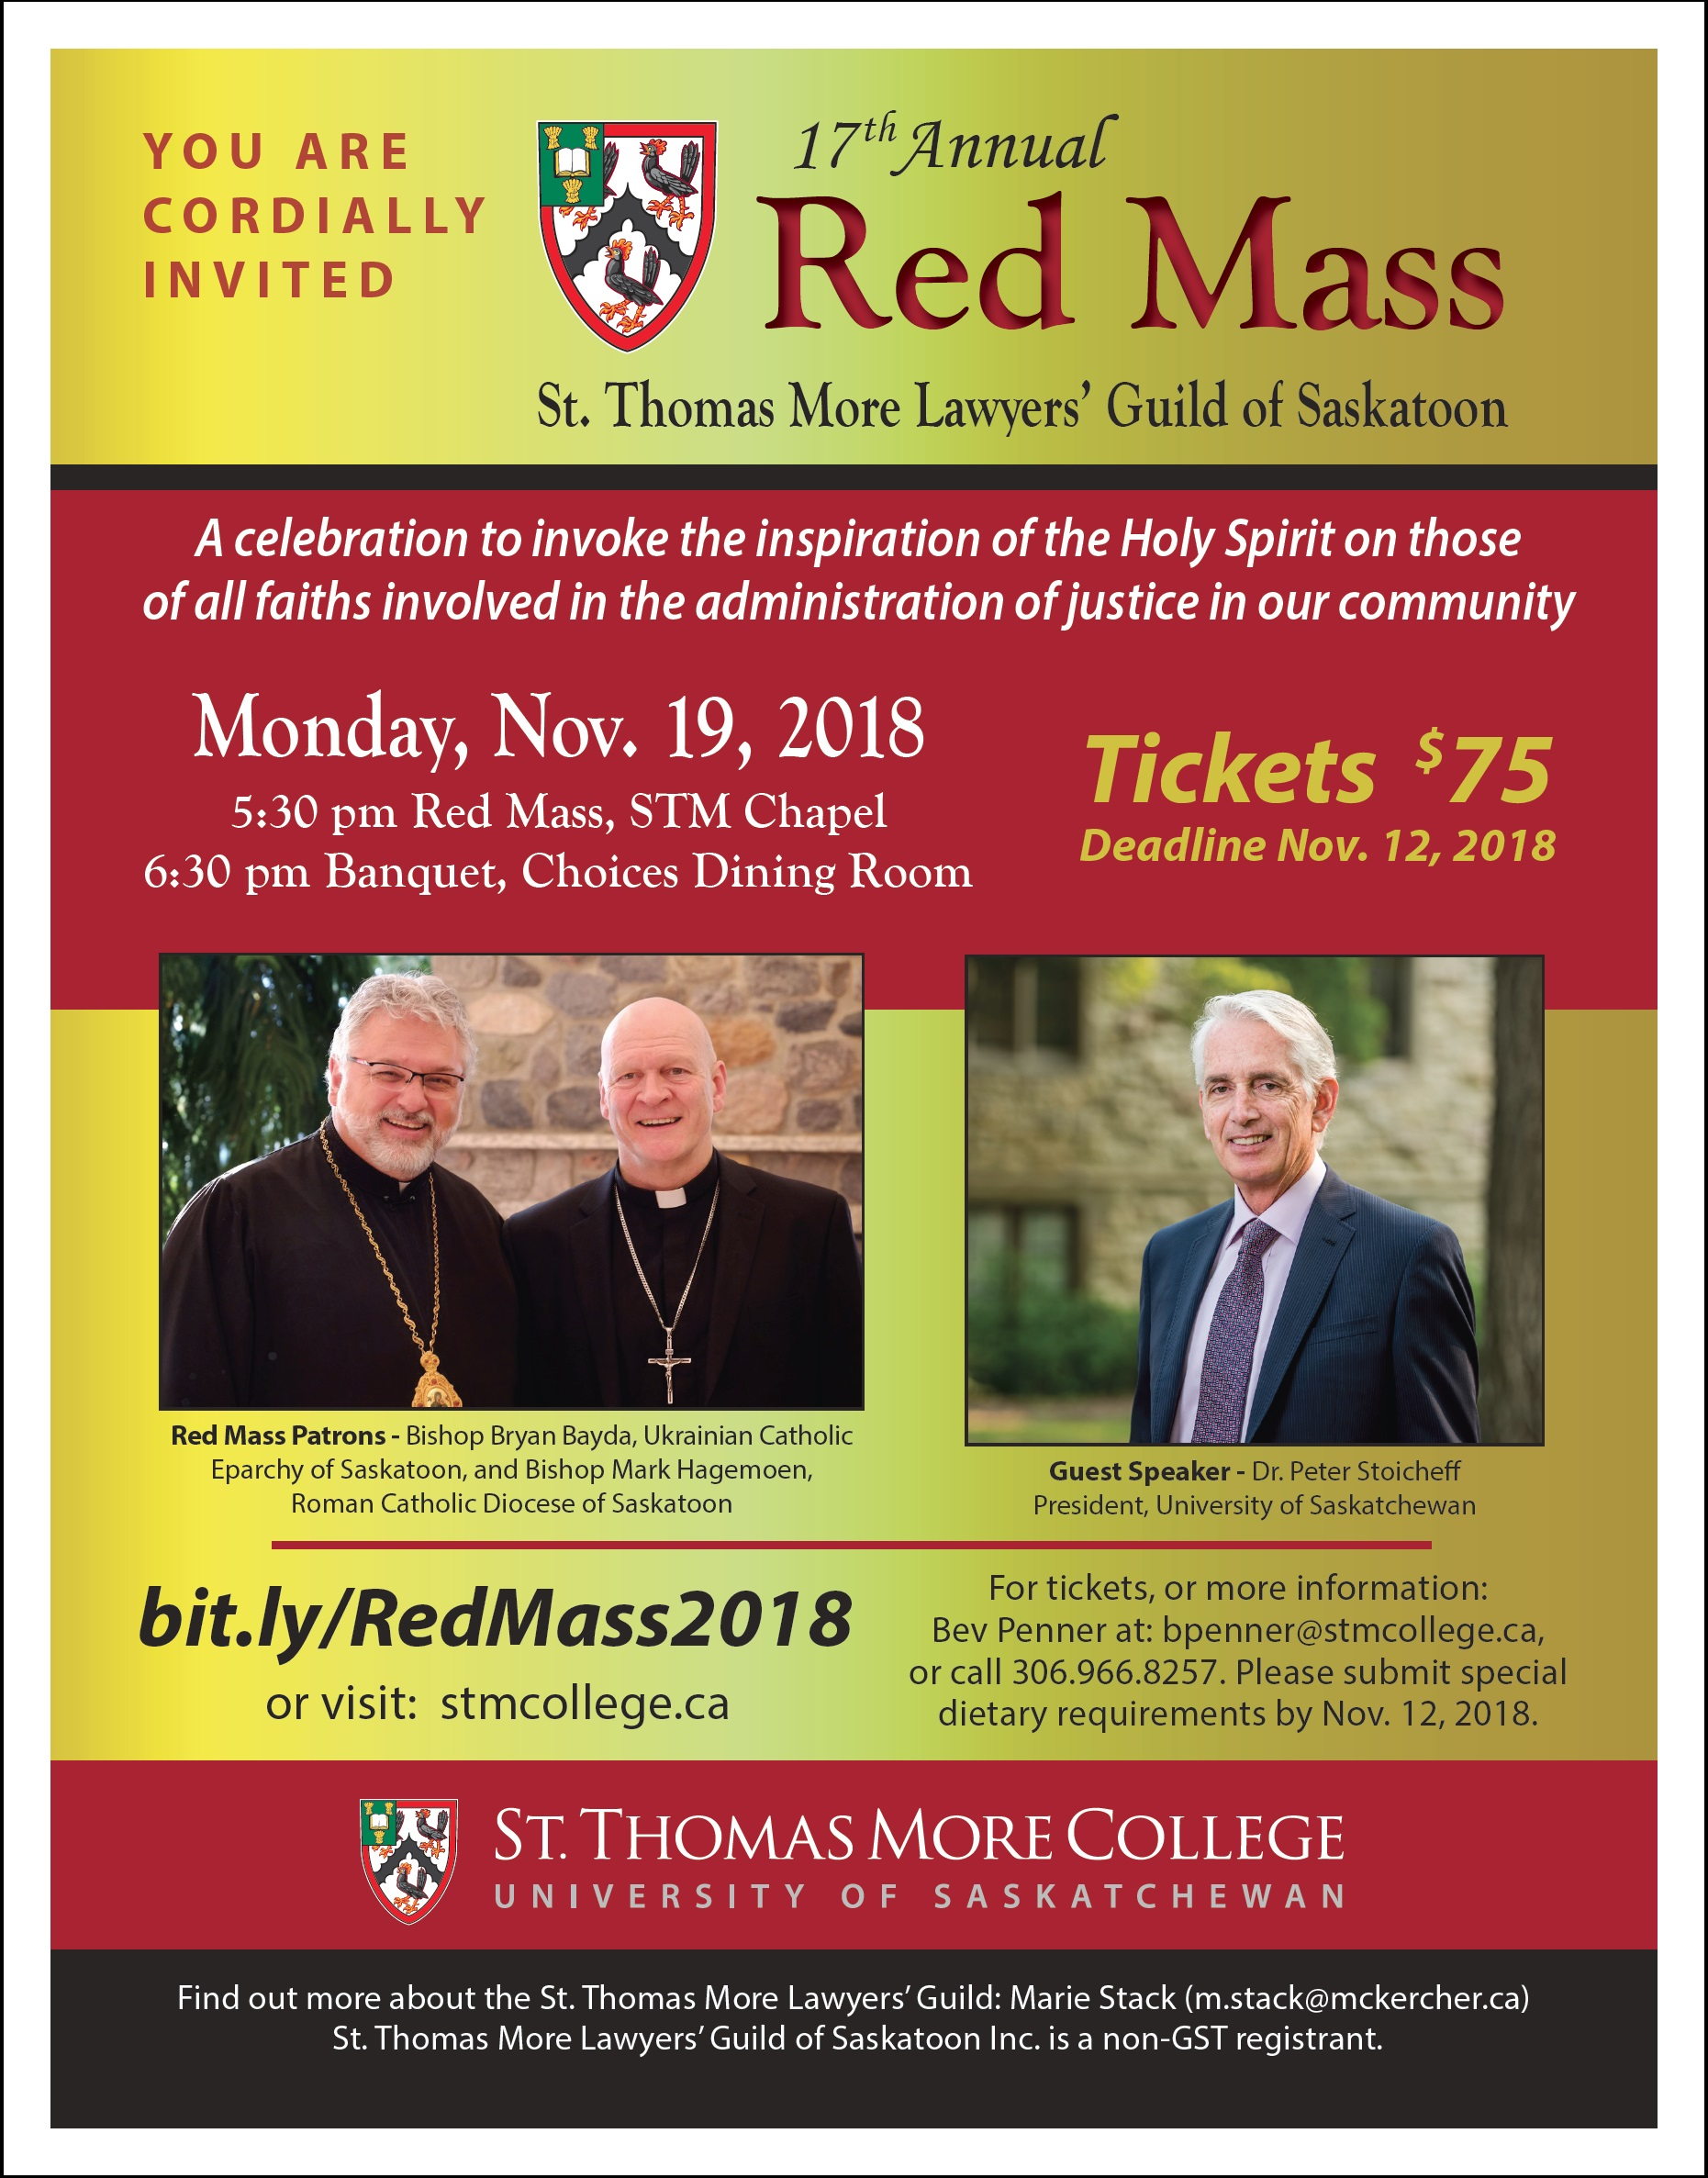 17th Annual Red Mass & Banquet – St  Thomas More College